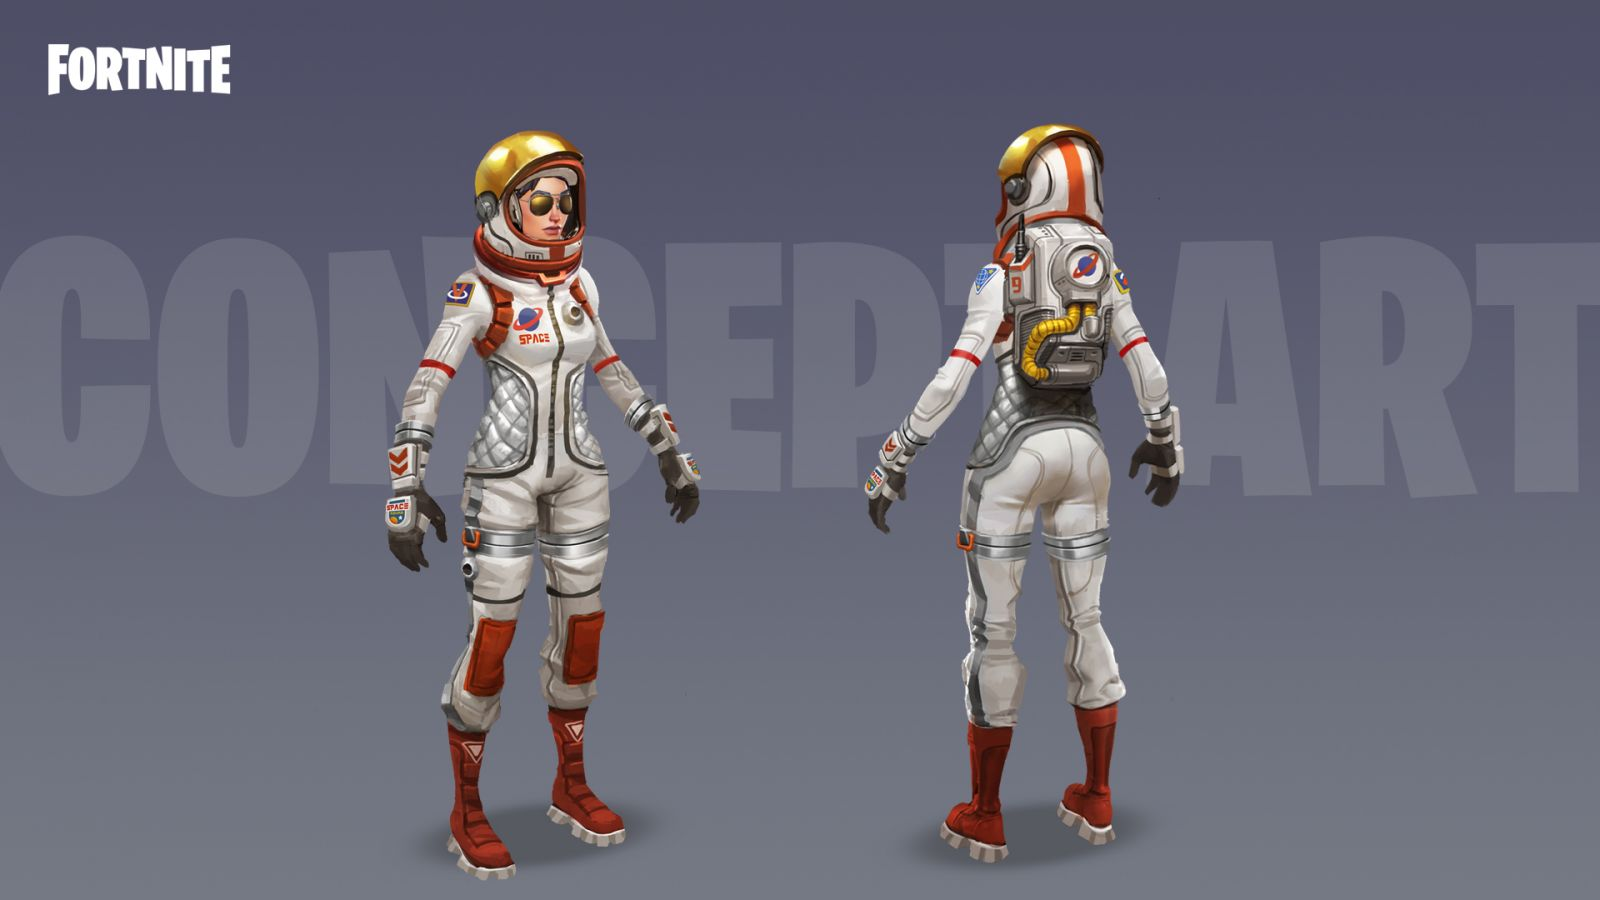 Fortnite Spacesuit